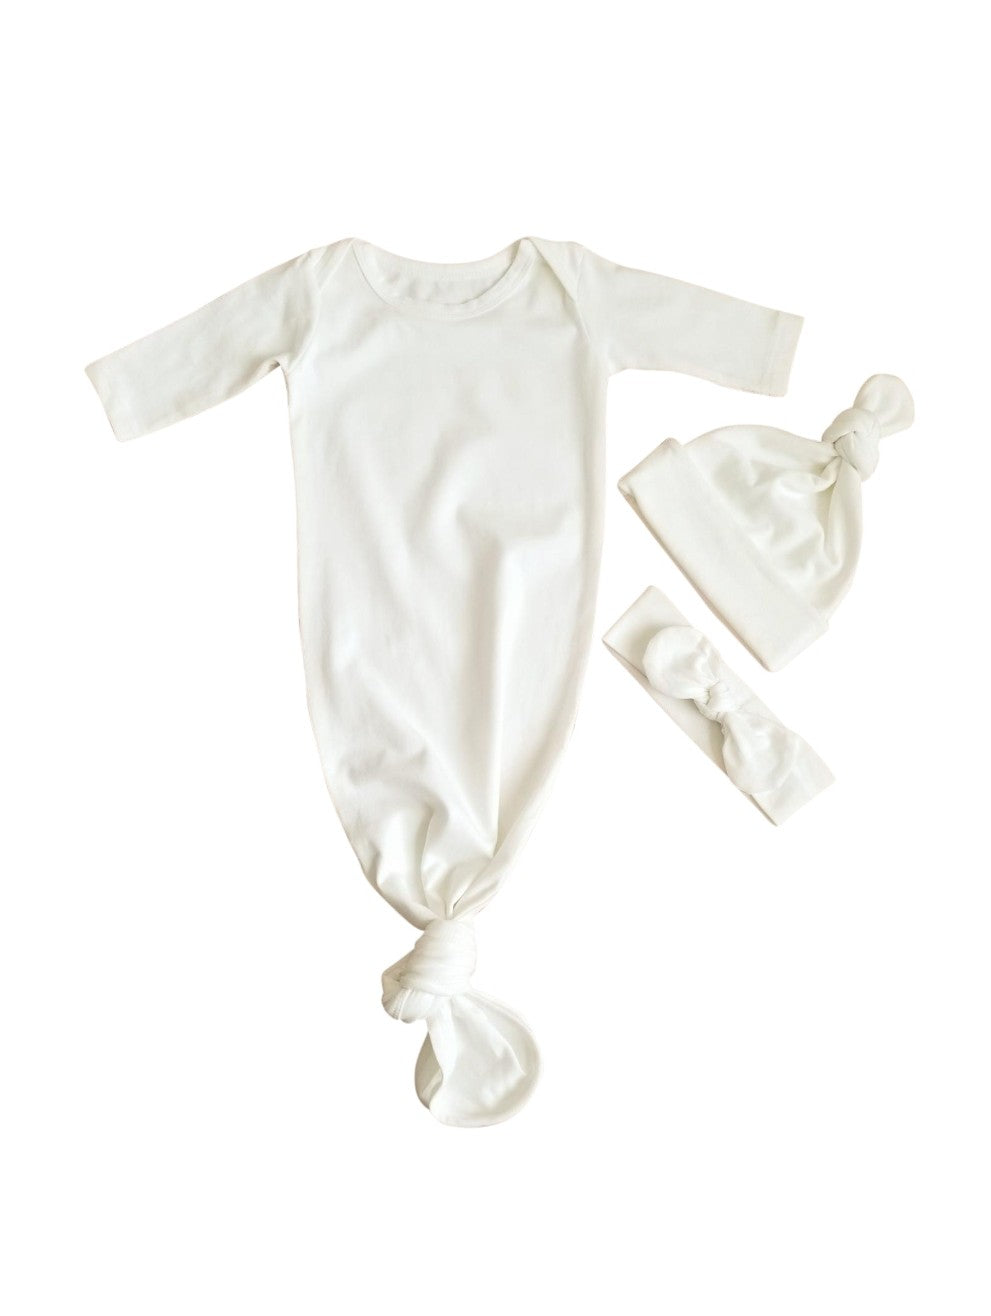 Ivory Newborn Knotted Gown Neutral Coming Home Outfit Girl Boy - Adassa Rose